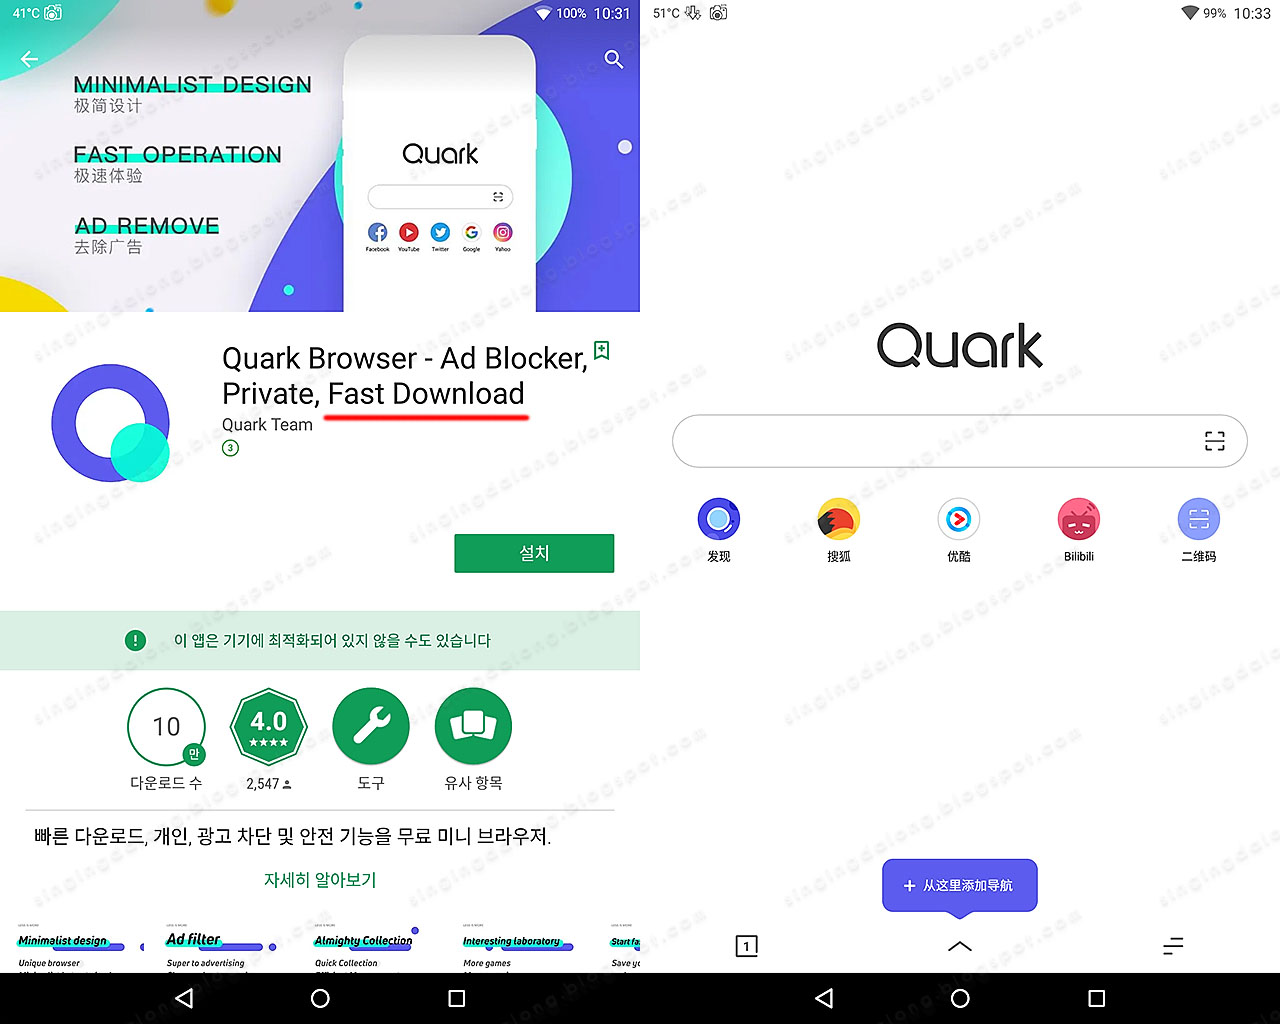 Accelerate Baidu download with Quark Browser on Android